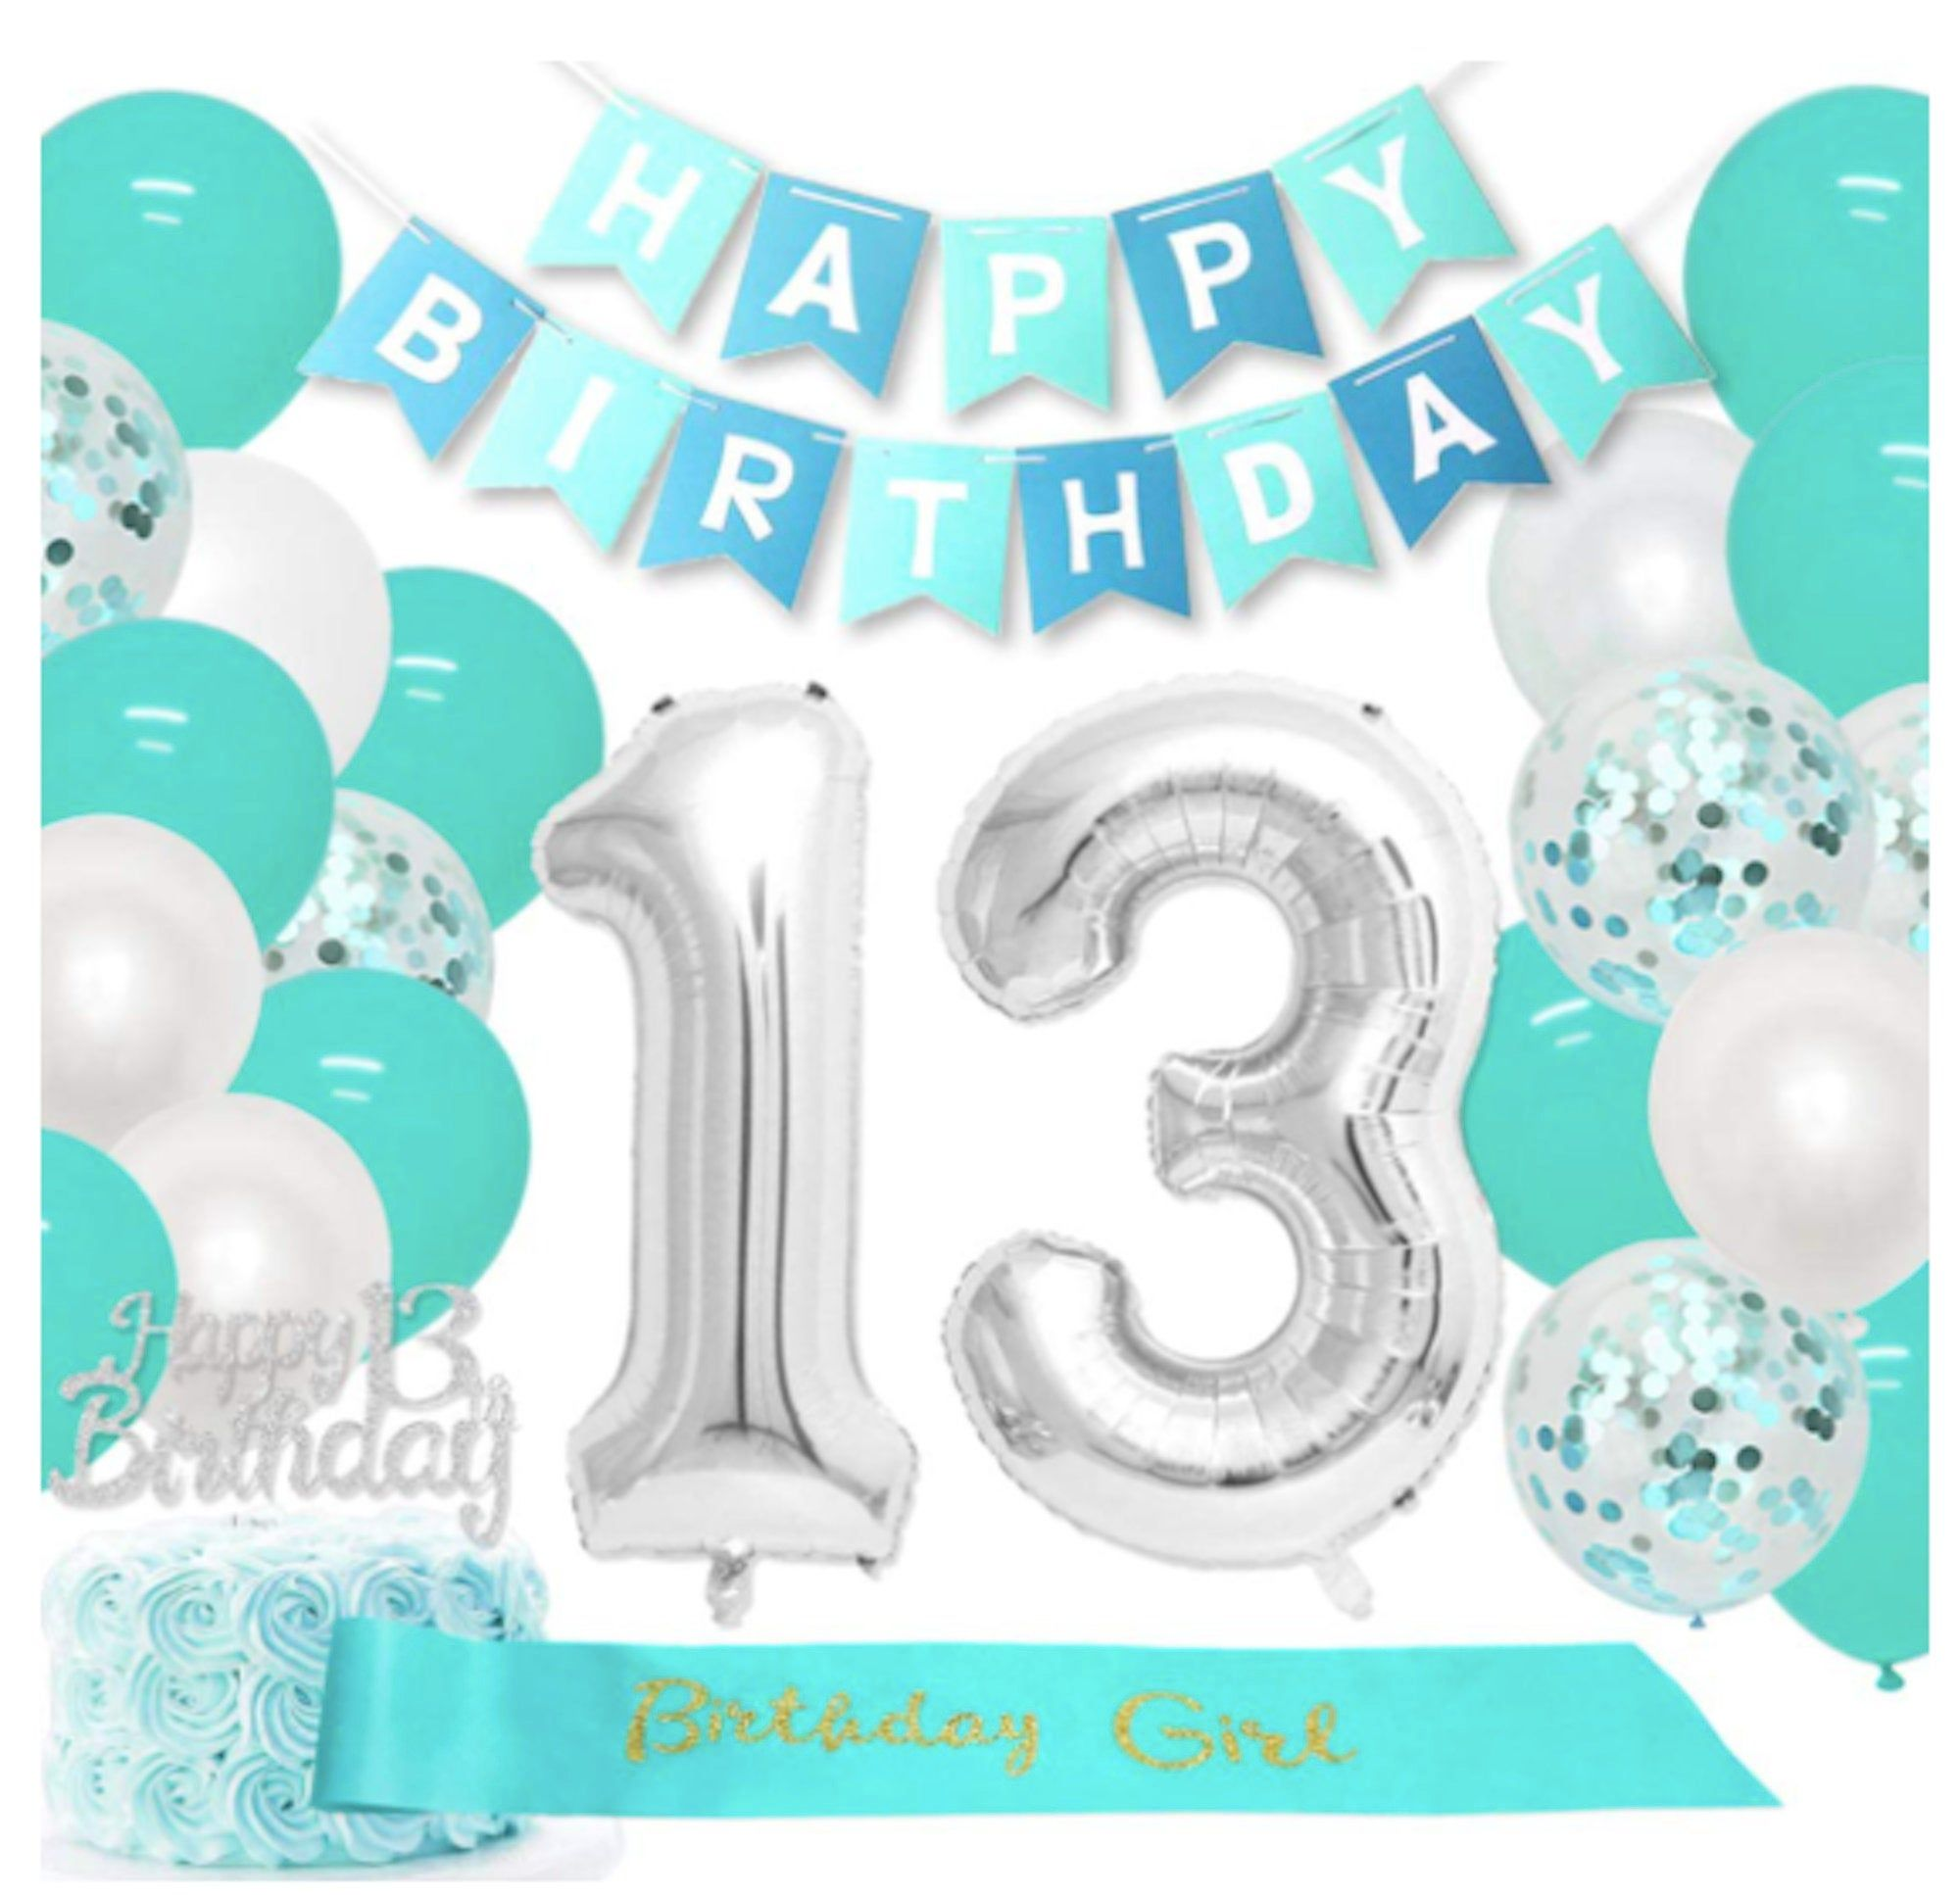 Teal 13th Birthday Decorations Girls Teal 13 Birthday Party Etsy In 2021 Happy 13th Birthday Girl Birthday Decorations 13th Birthday Parties